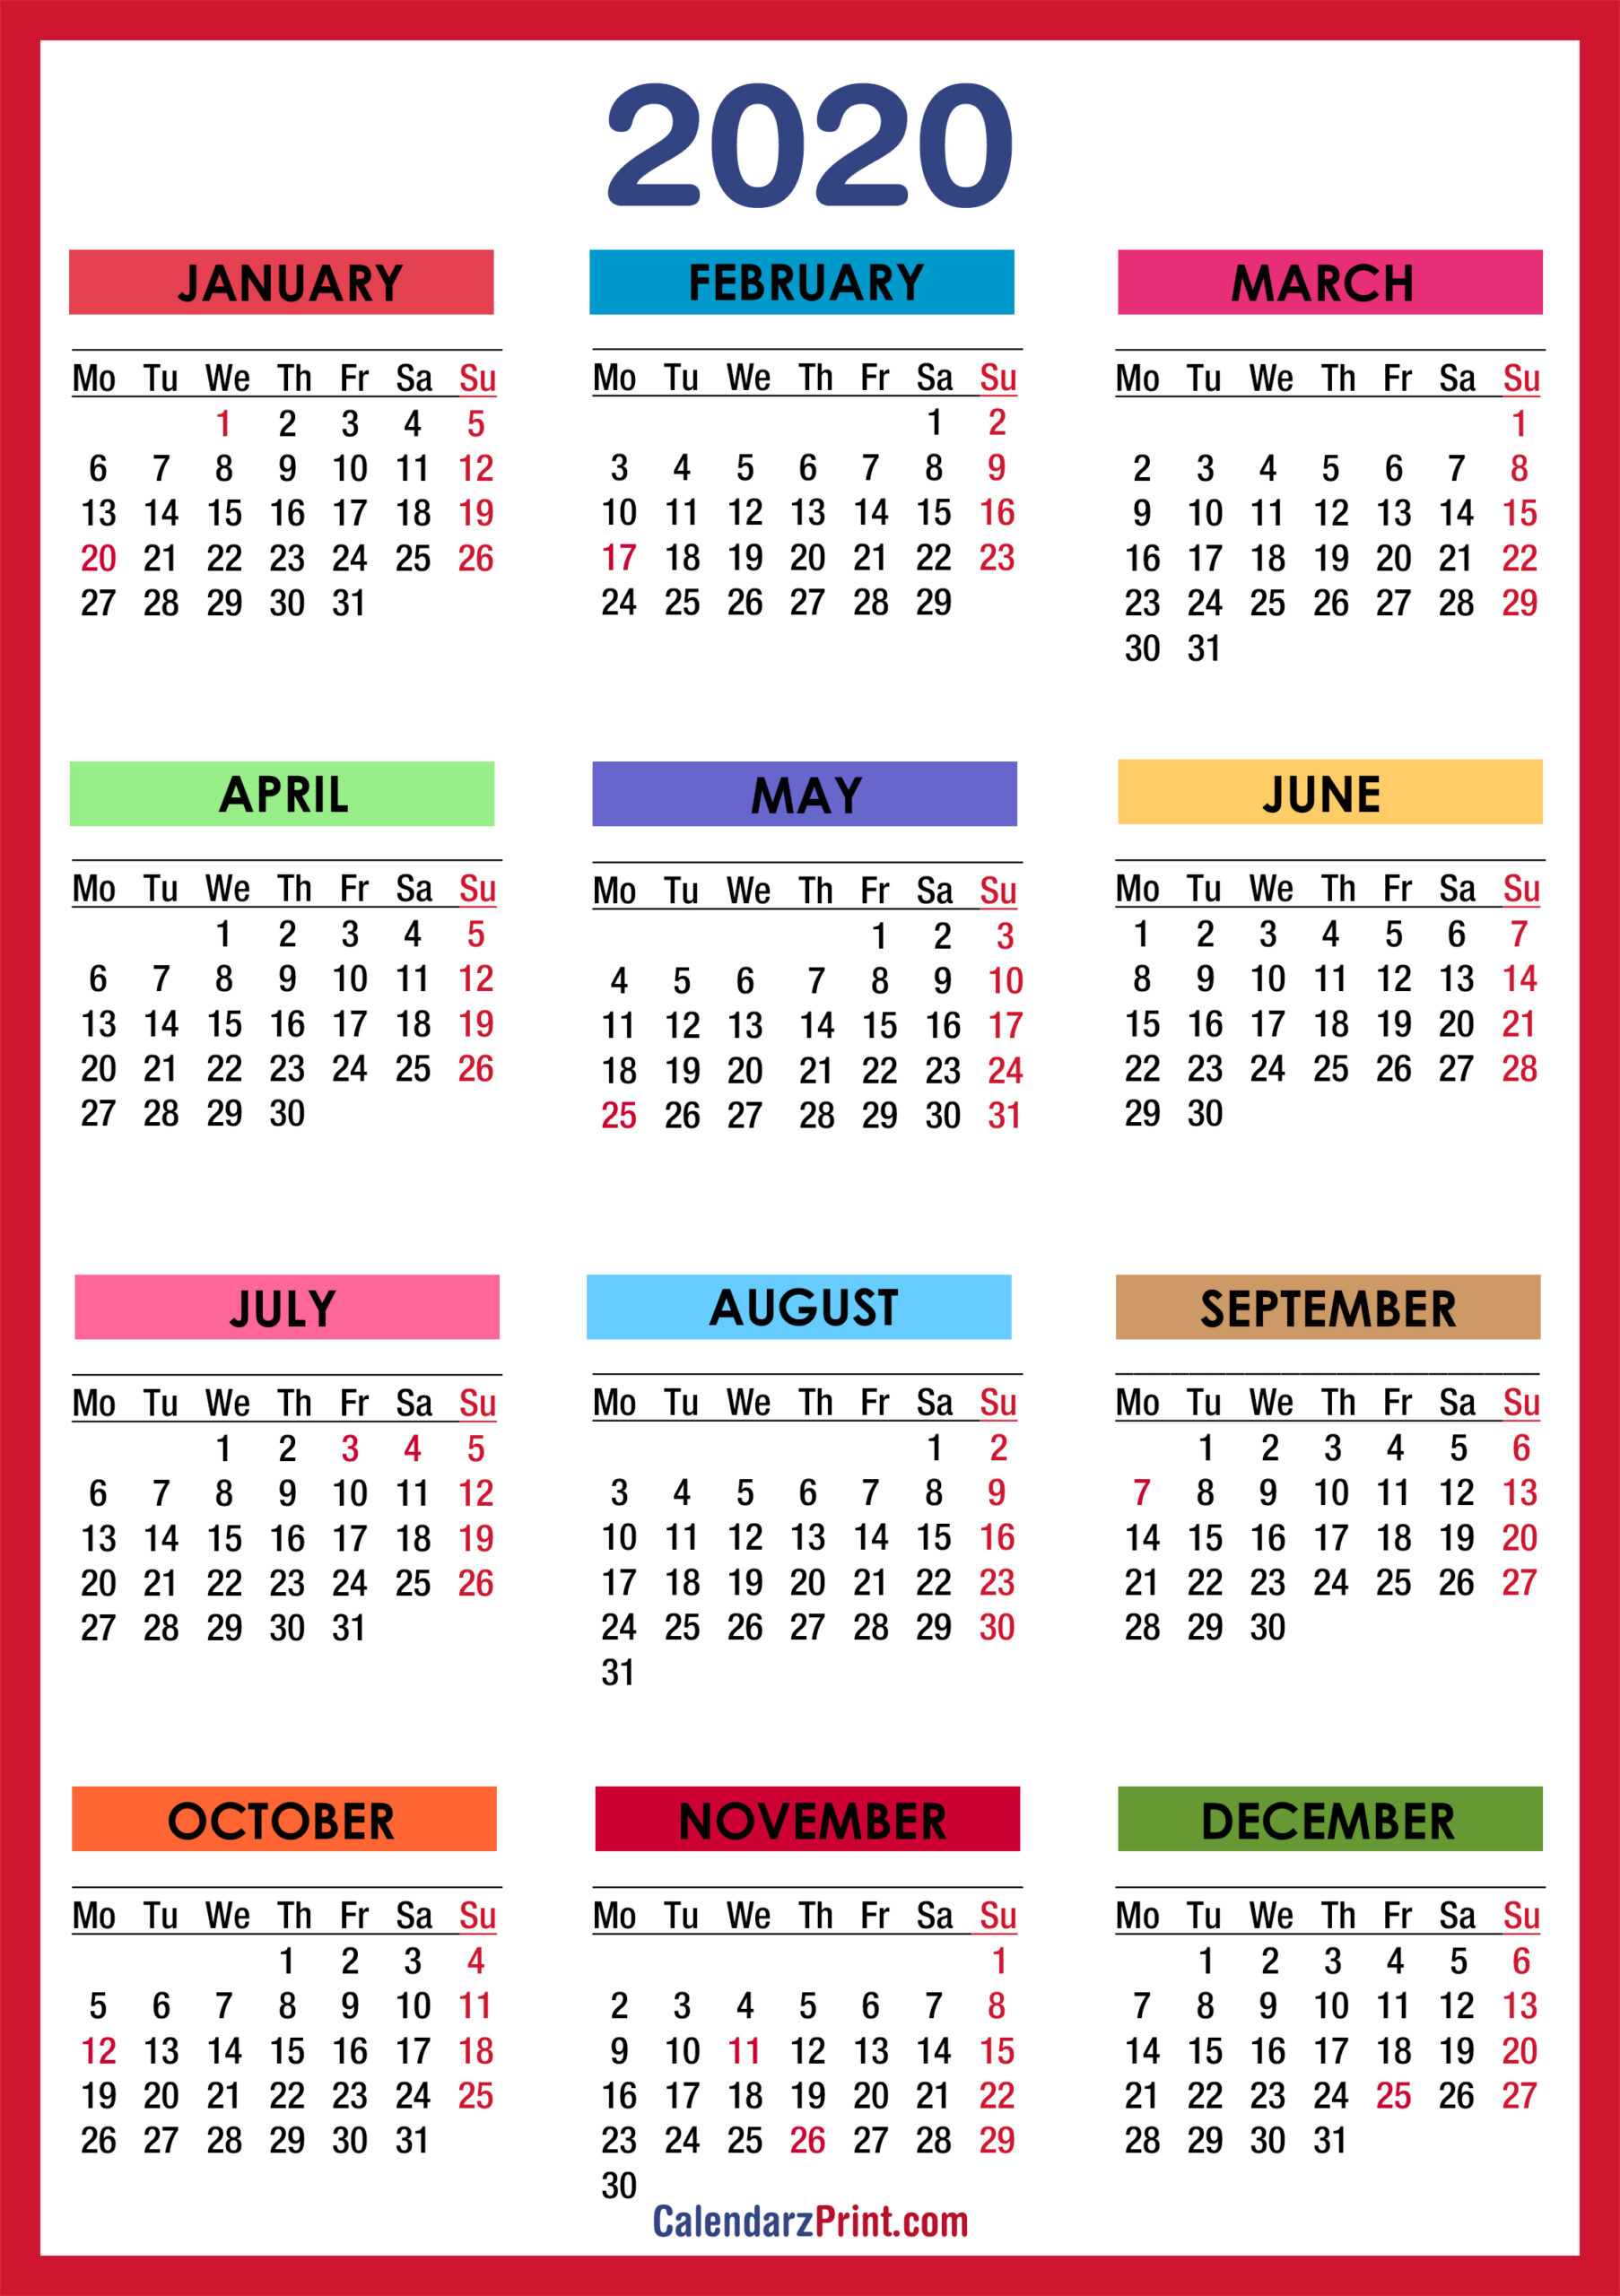 2020 Calendar With Holidays, Printable Free, Colorful, Red